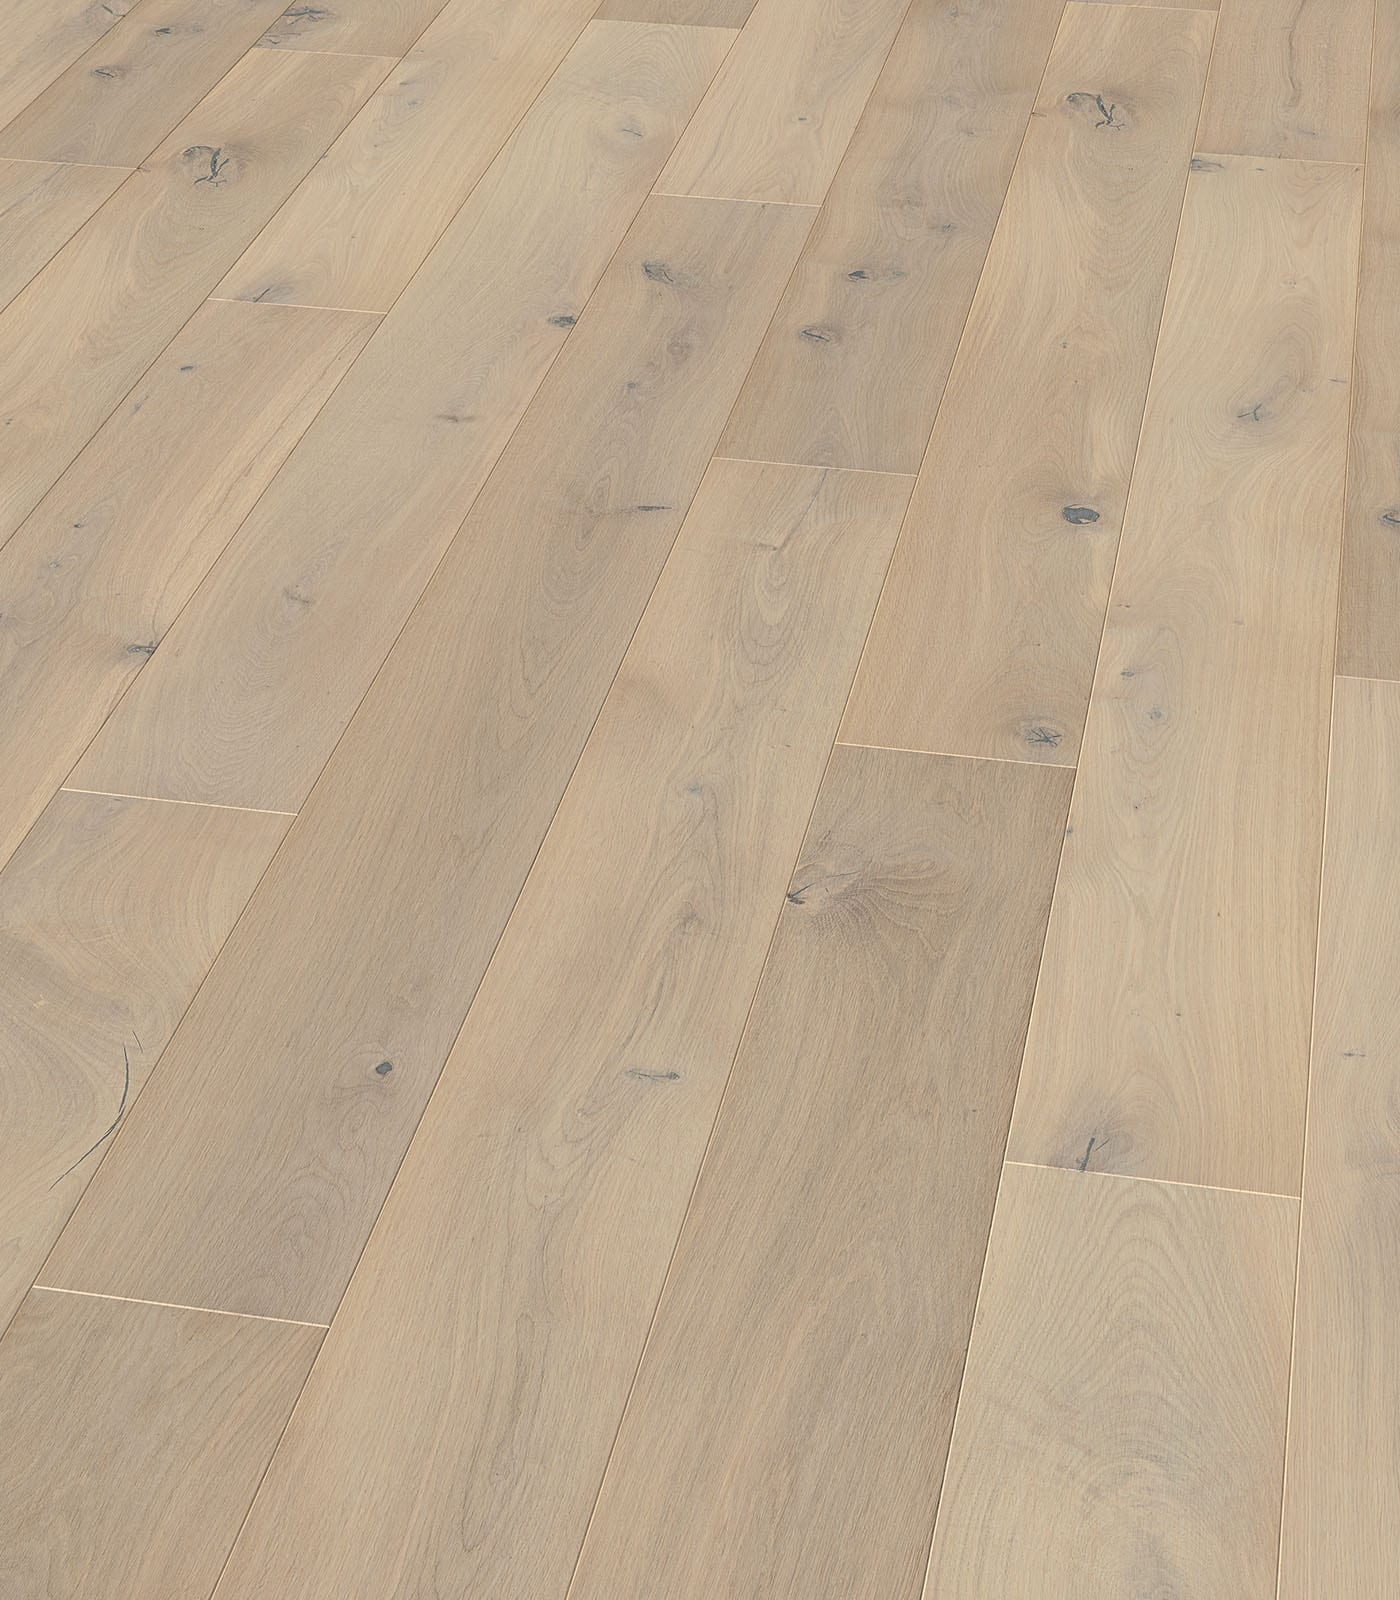 Taos-Lifestyle Collection-European Oak floors-angle